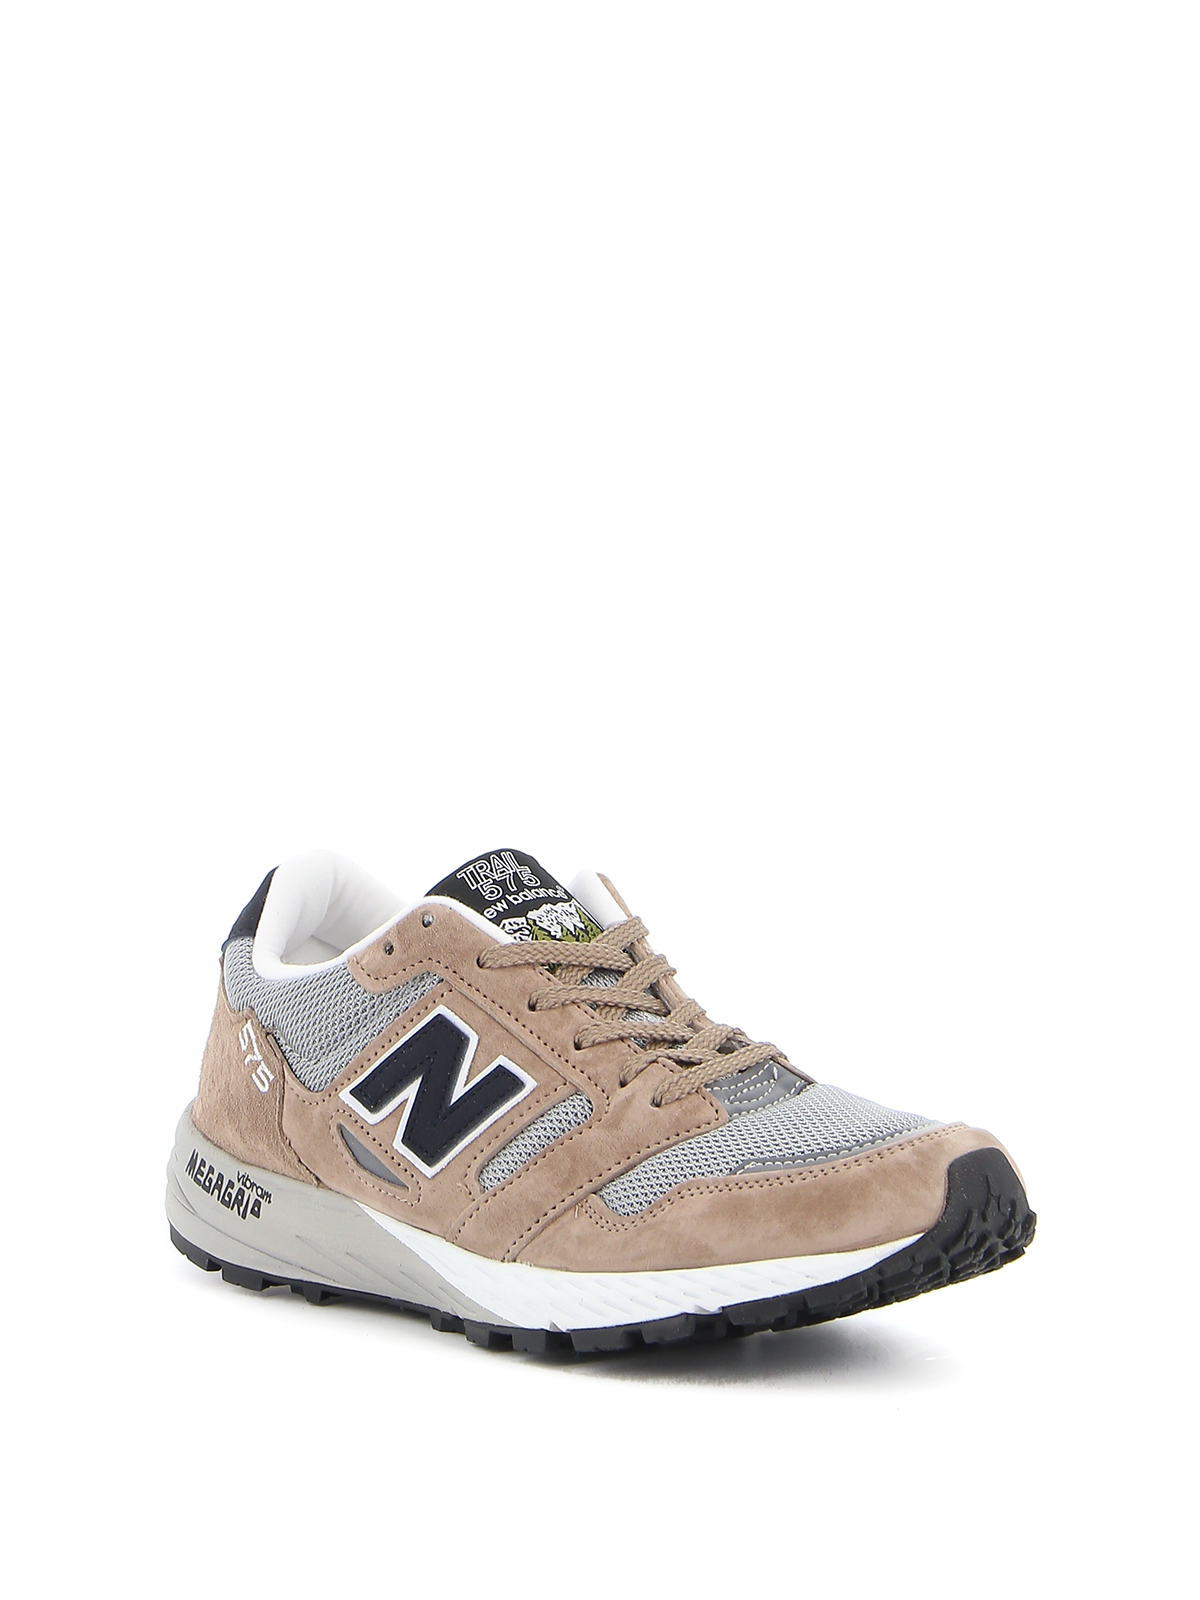 Trainers New Balance - Trail 575 sneakers - MTL575GN